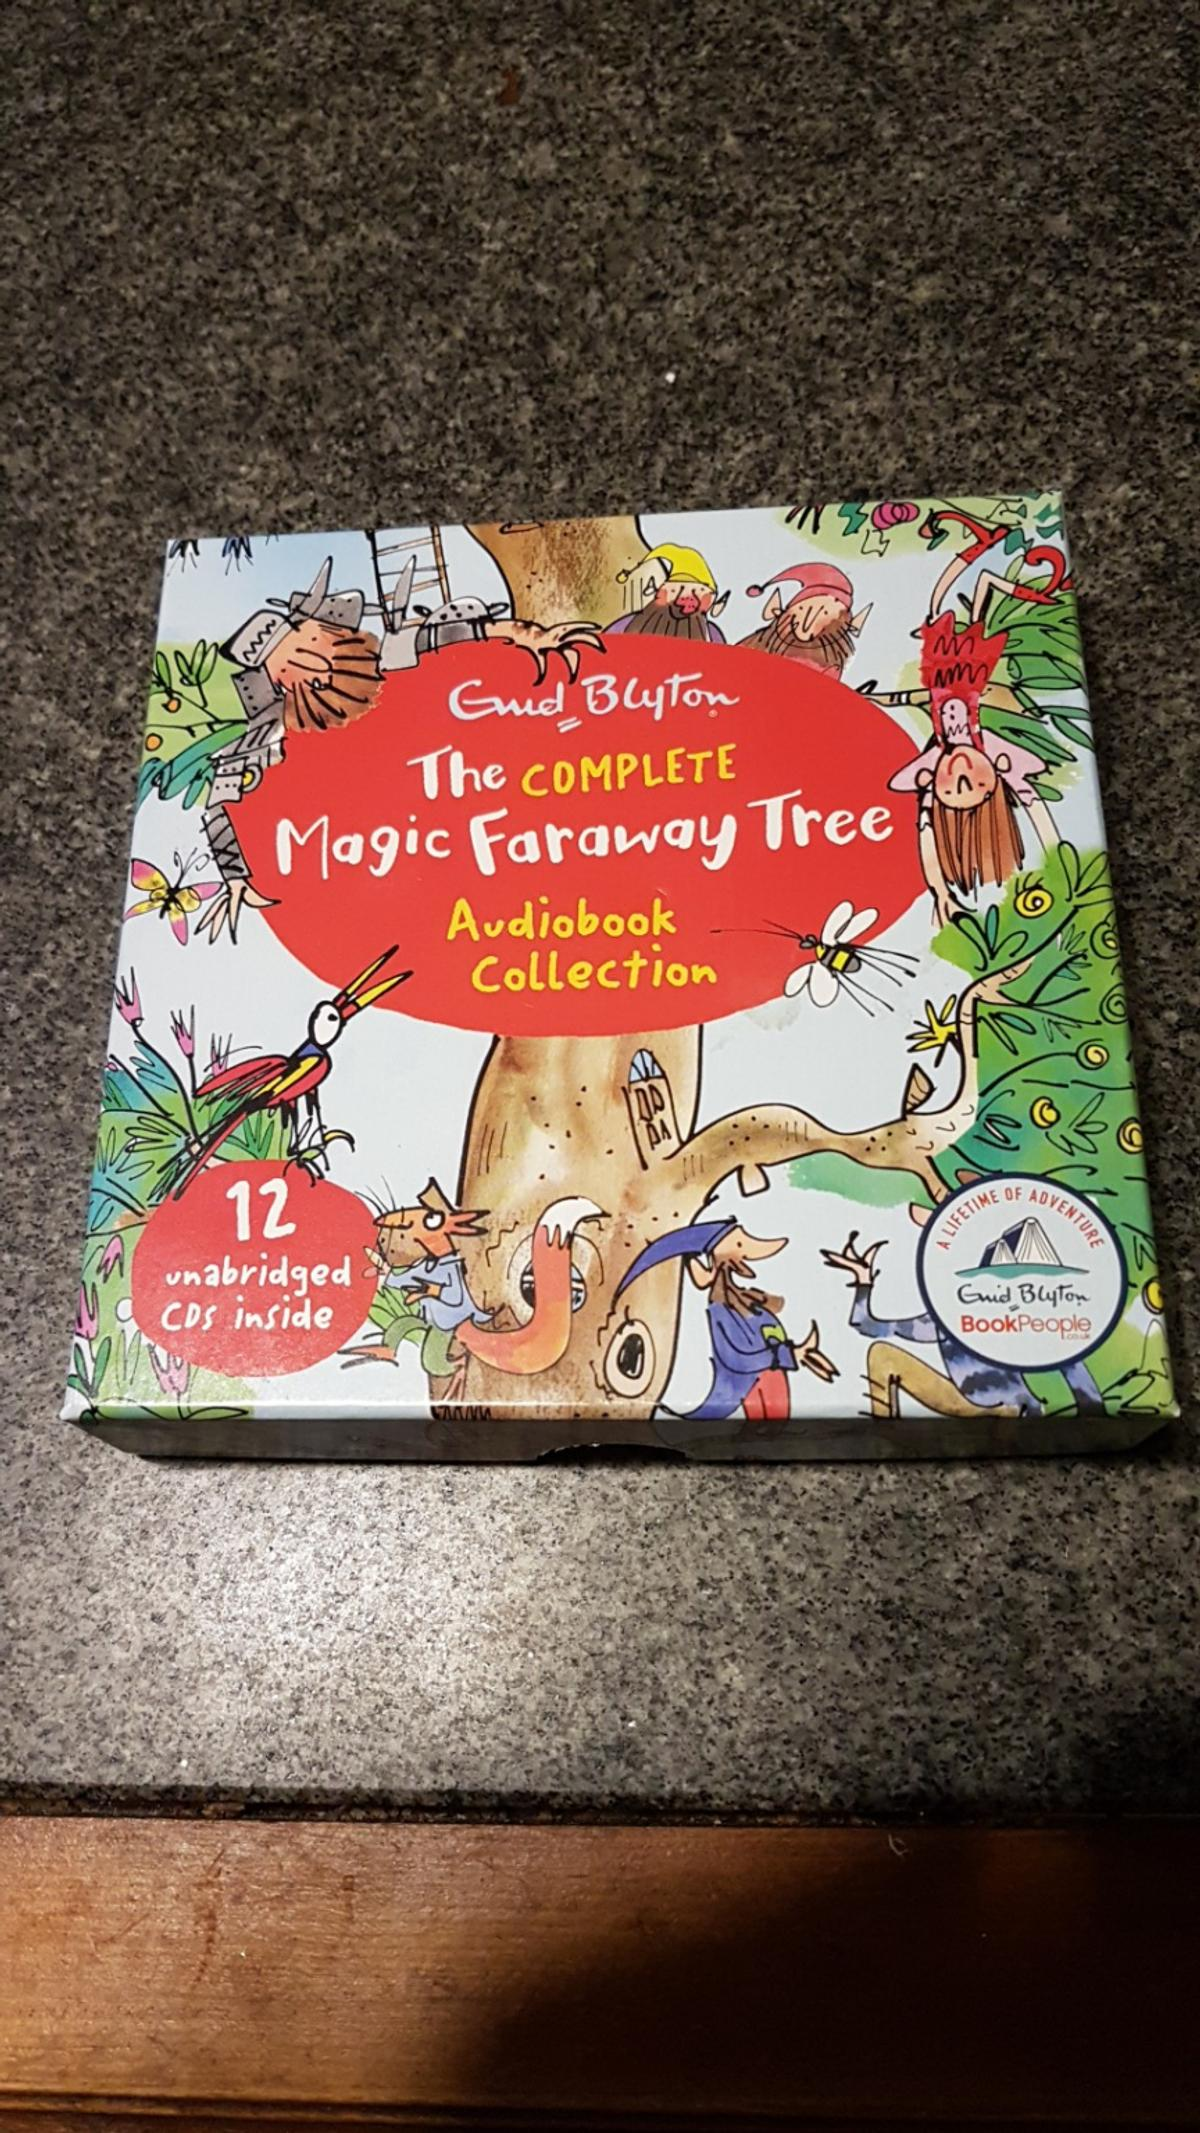 The complete Magic faraway tree audio book co in Calcoed for